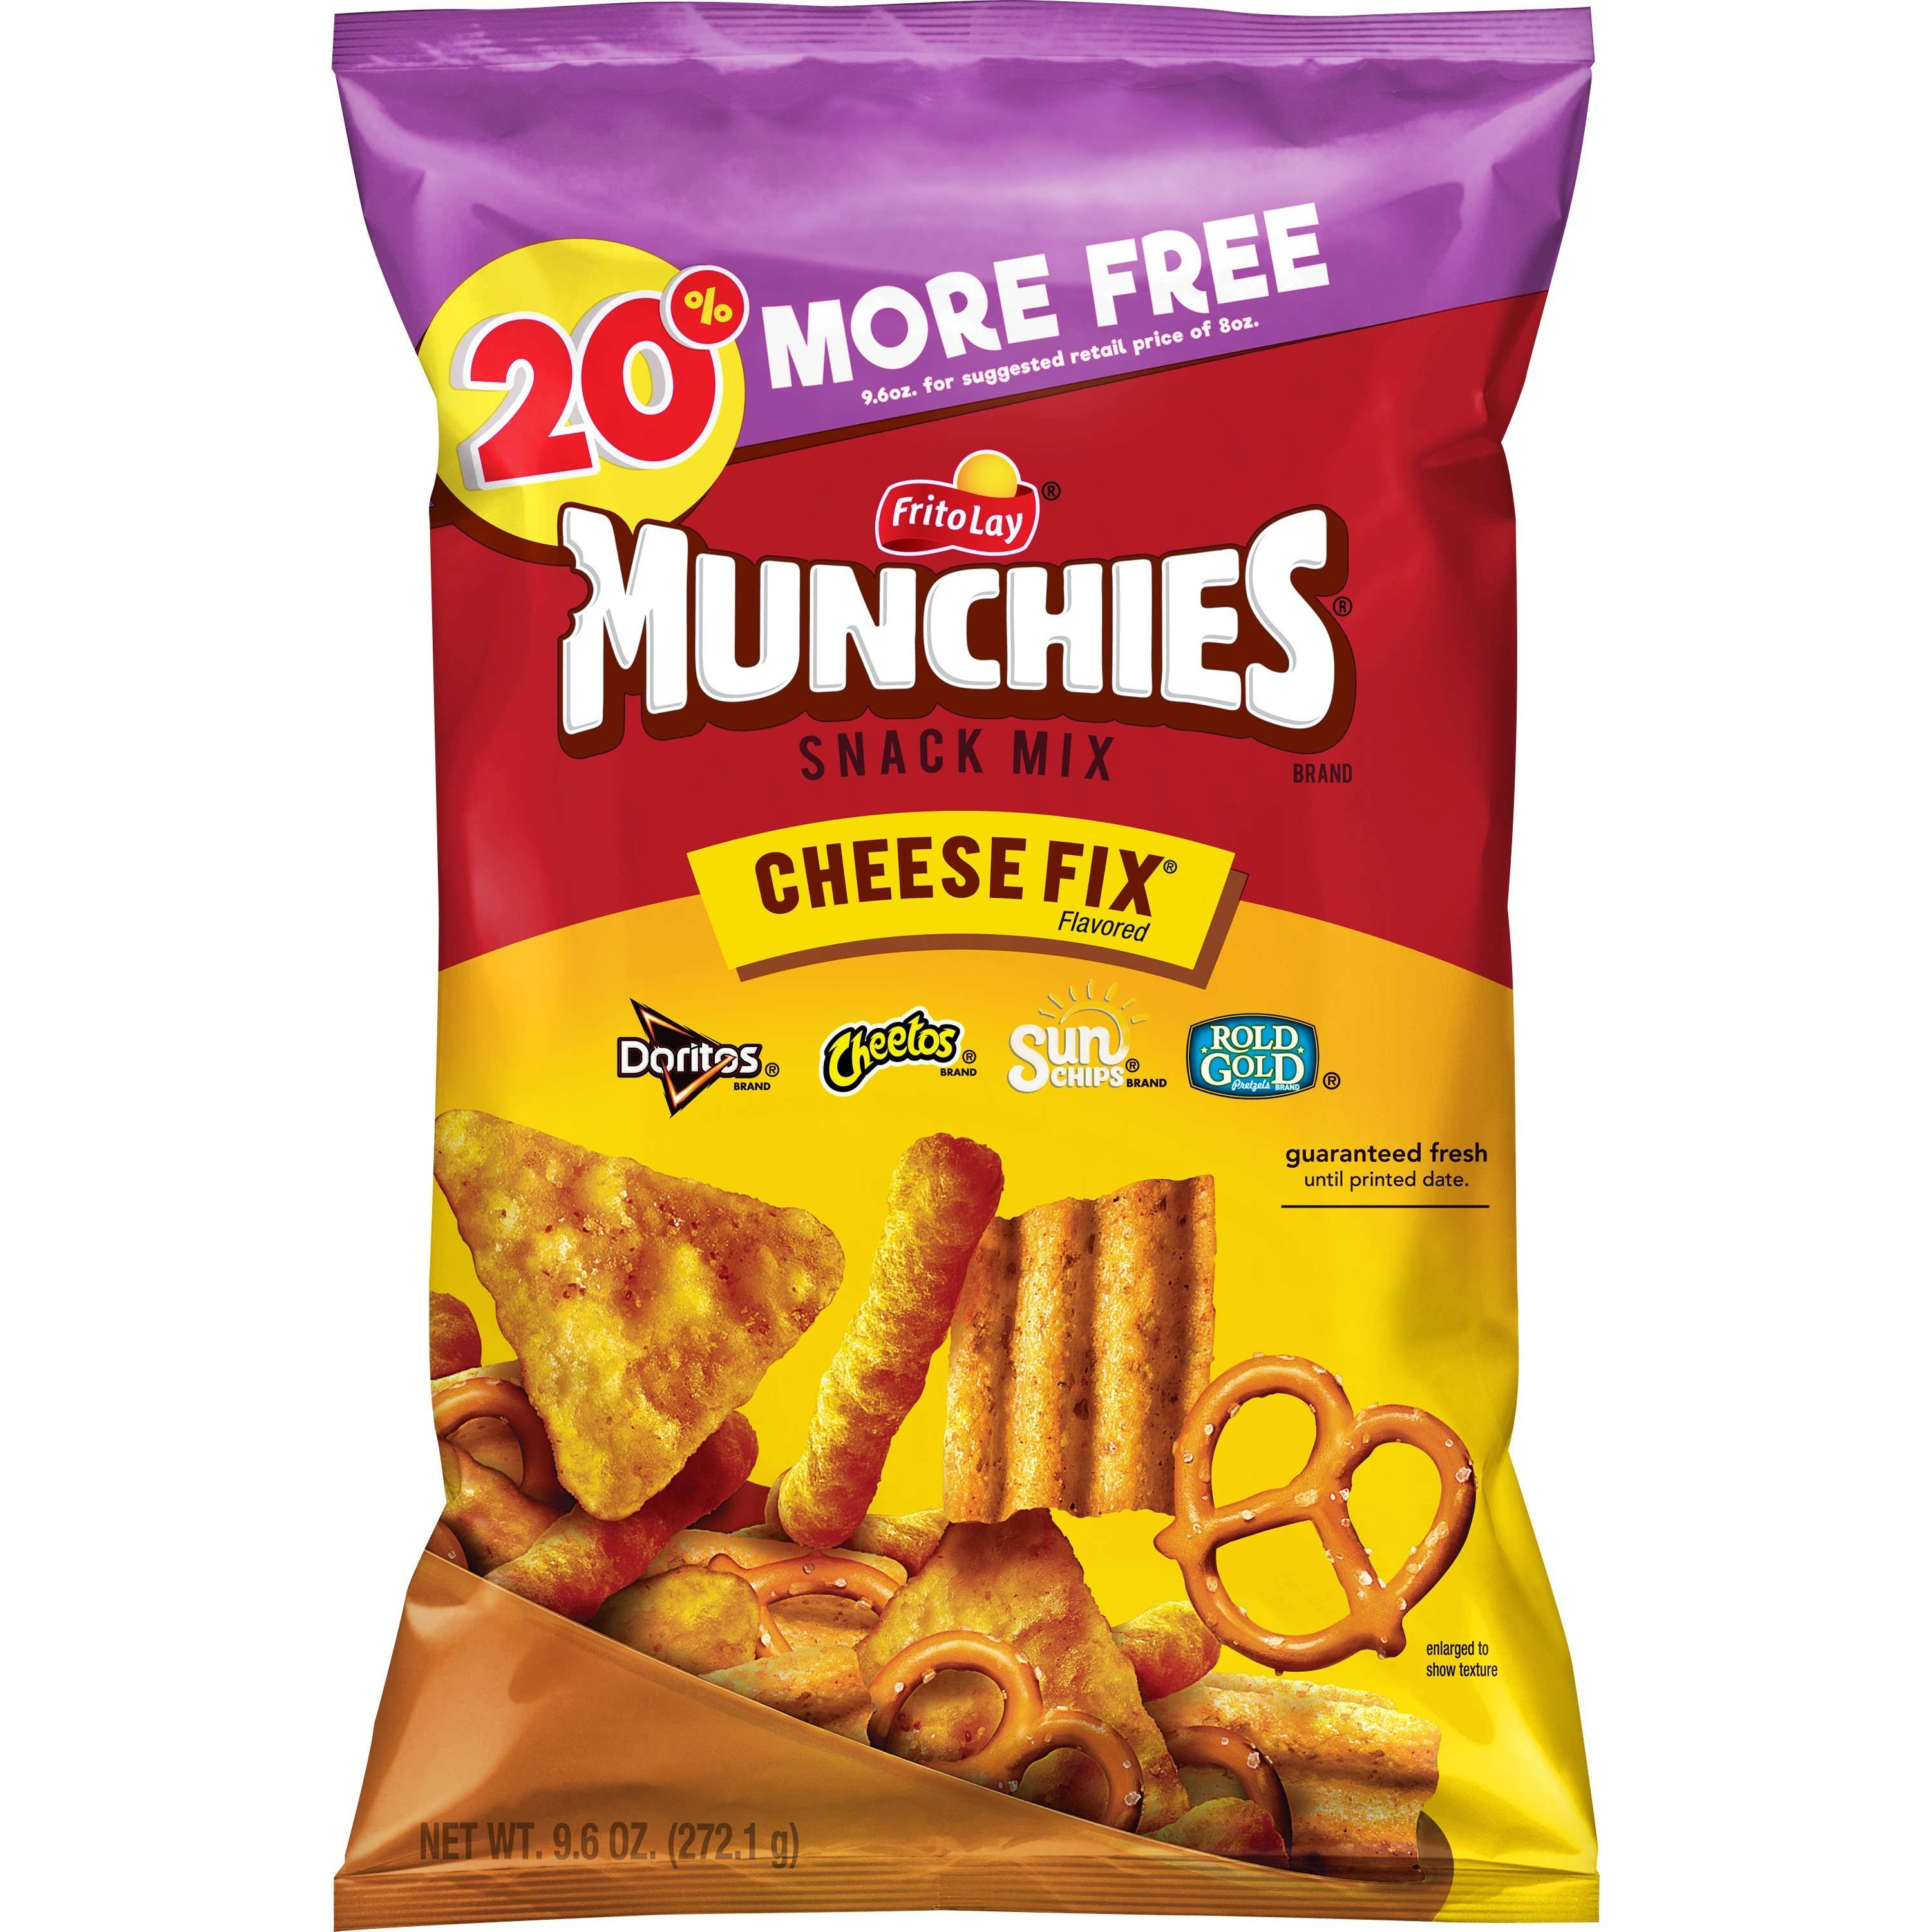 Munchies Cheese Fix Xl 20% More 9.6oz